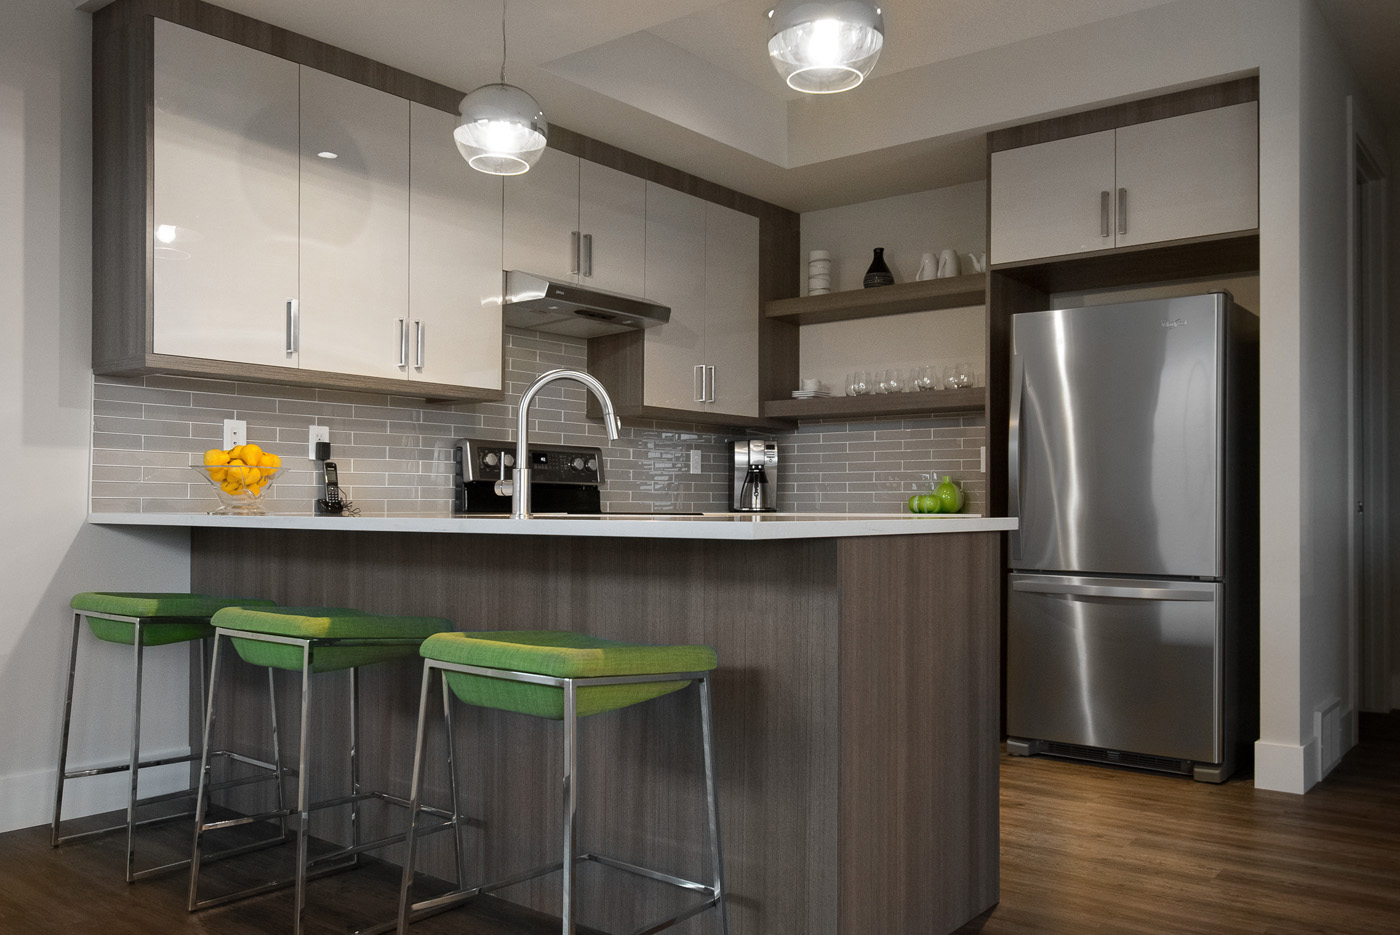 Kitchen Cabinets Regina How To Make The Best Use Of Small Spaces Superior Cabinets